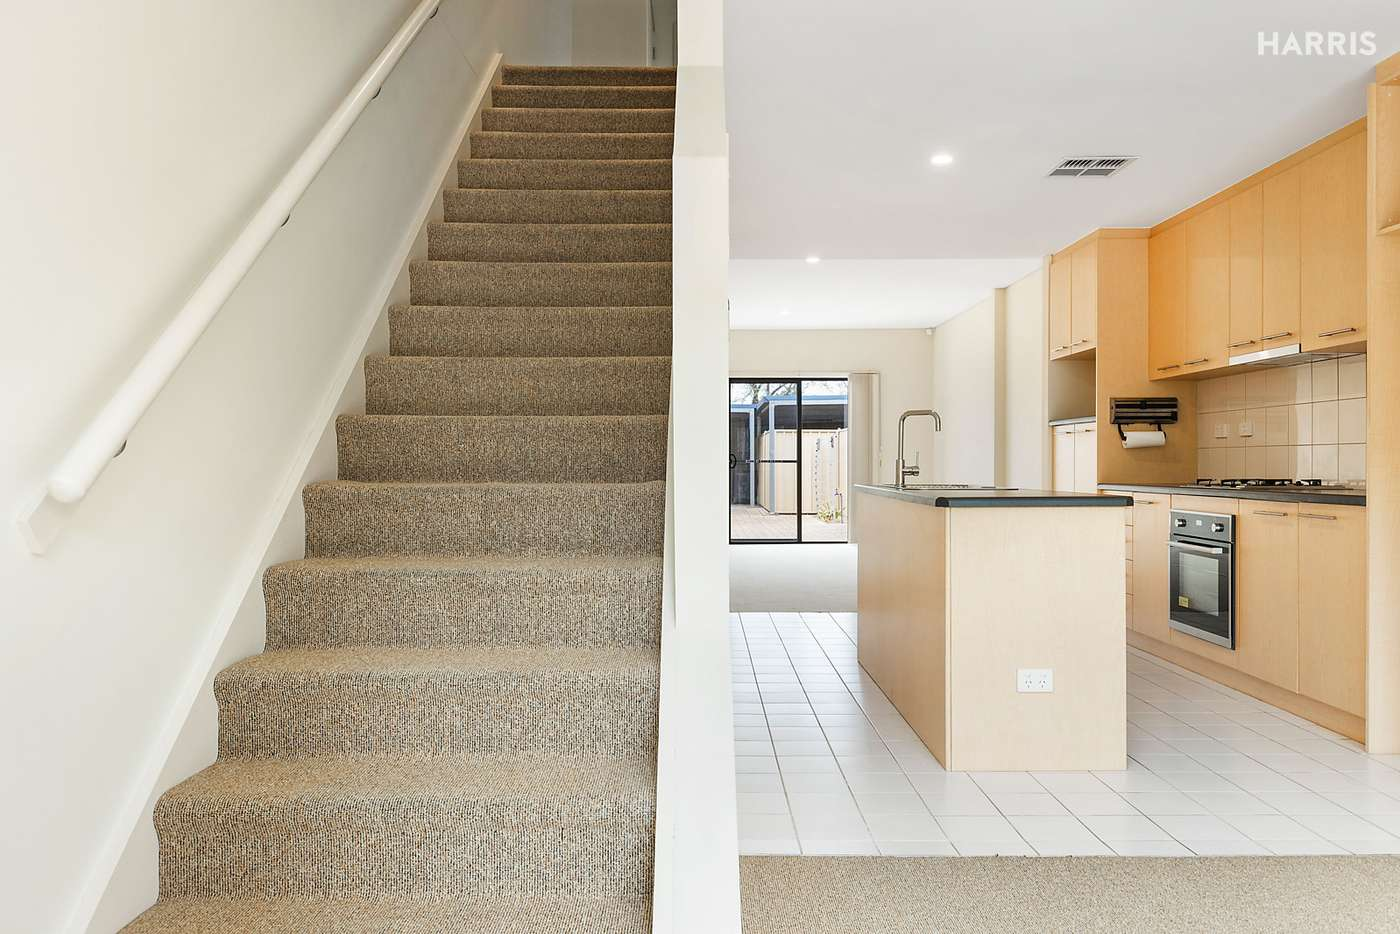 Sixth view of Homely townhouse listing, 7/2 Greentree Place, Mawson Lakes SA 5095